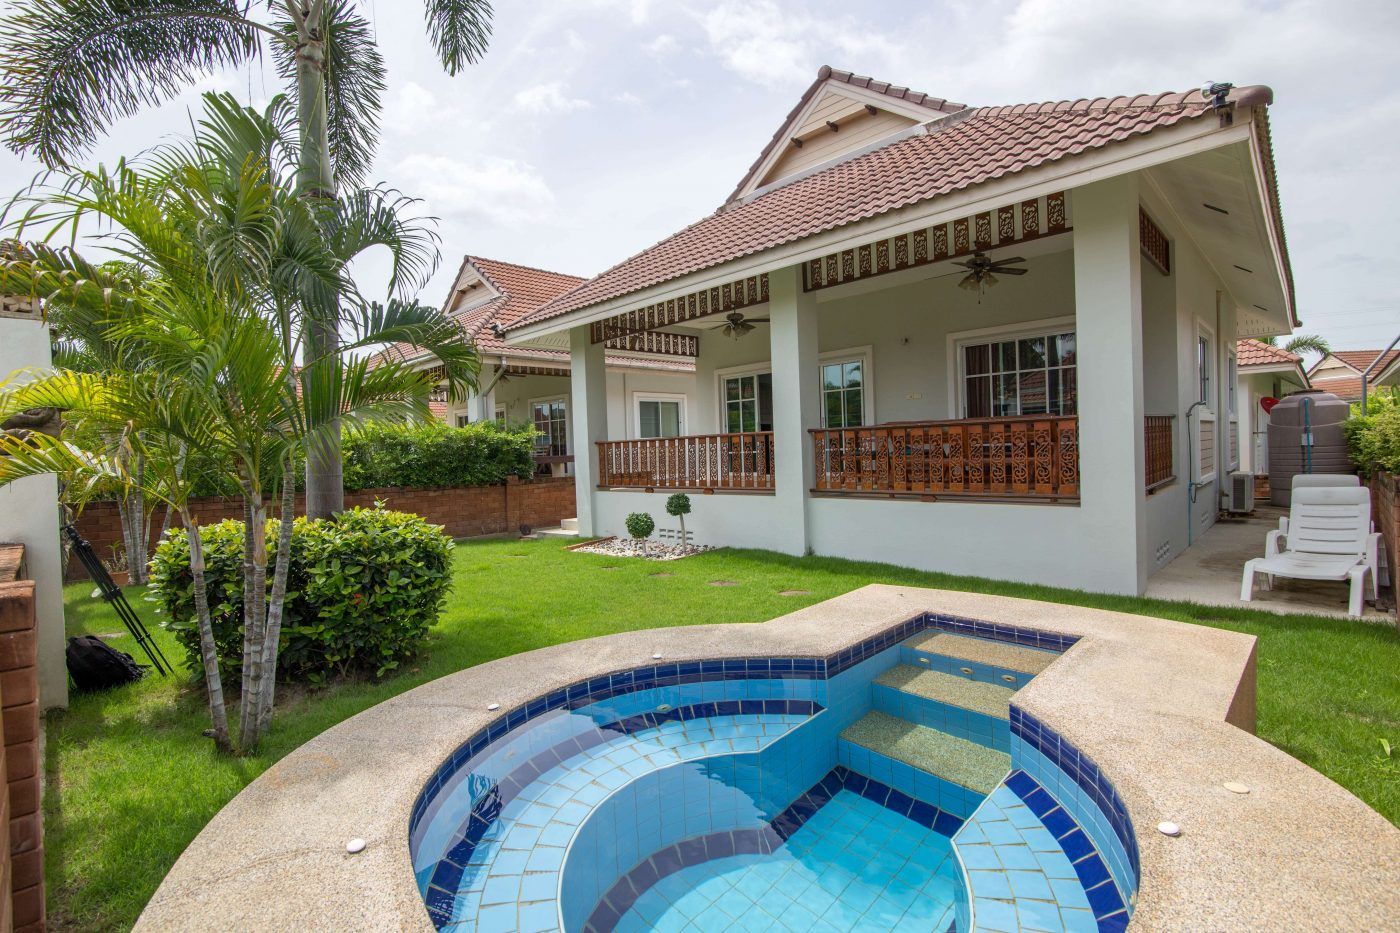 hua hin soi 88 villa for sale